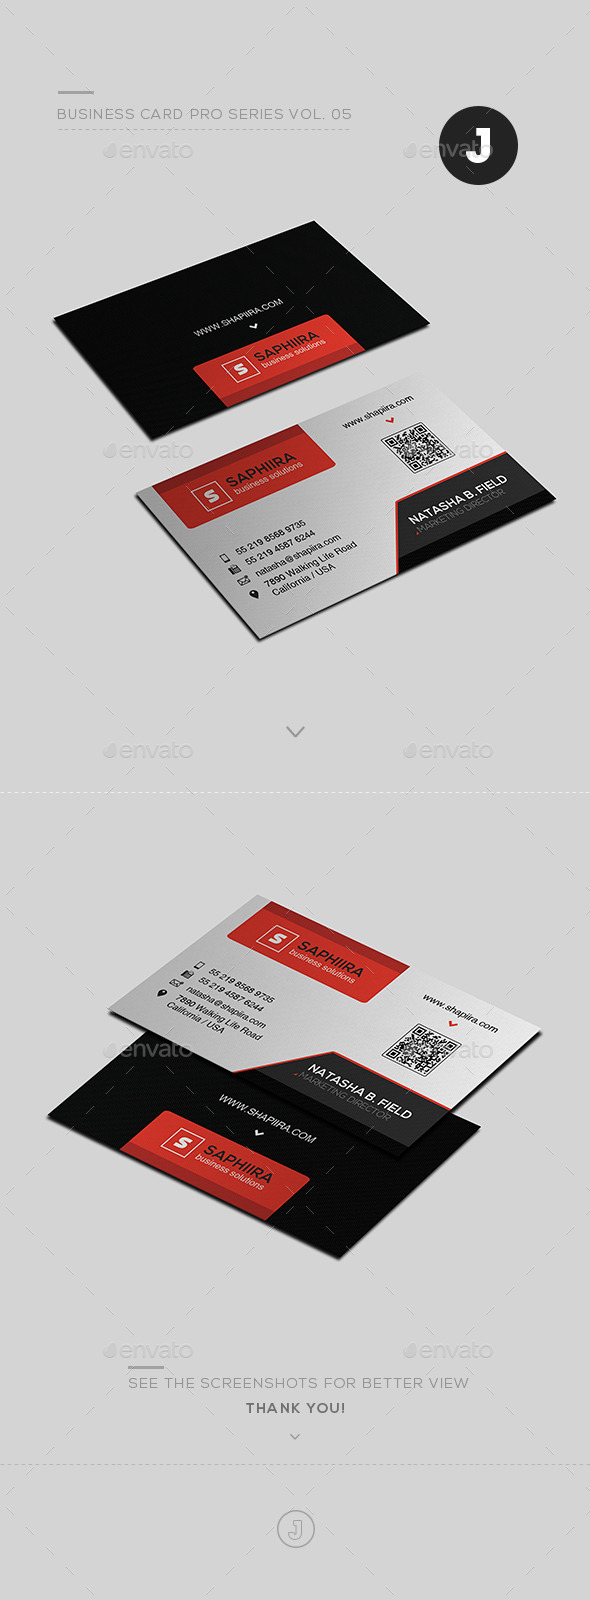 Business Card Pro Series Vol. 05 - Creative Business Cards